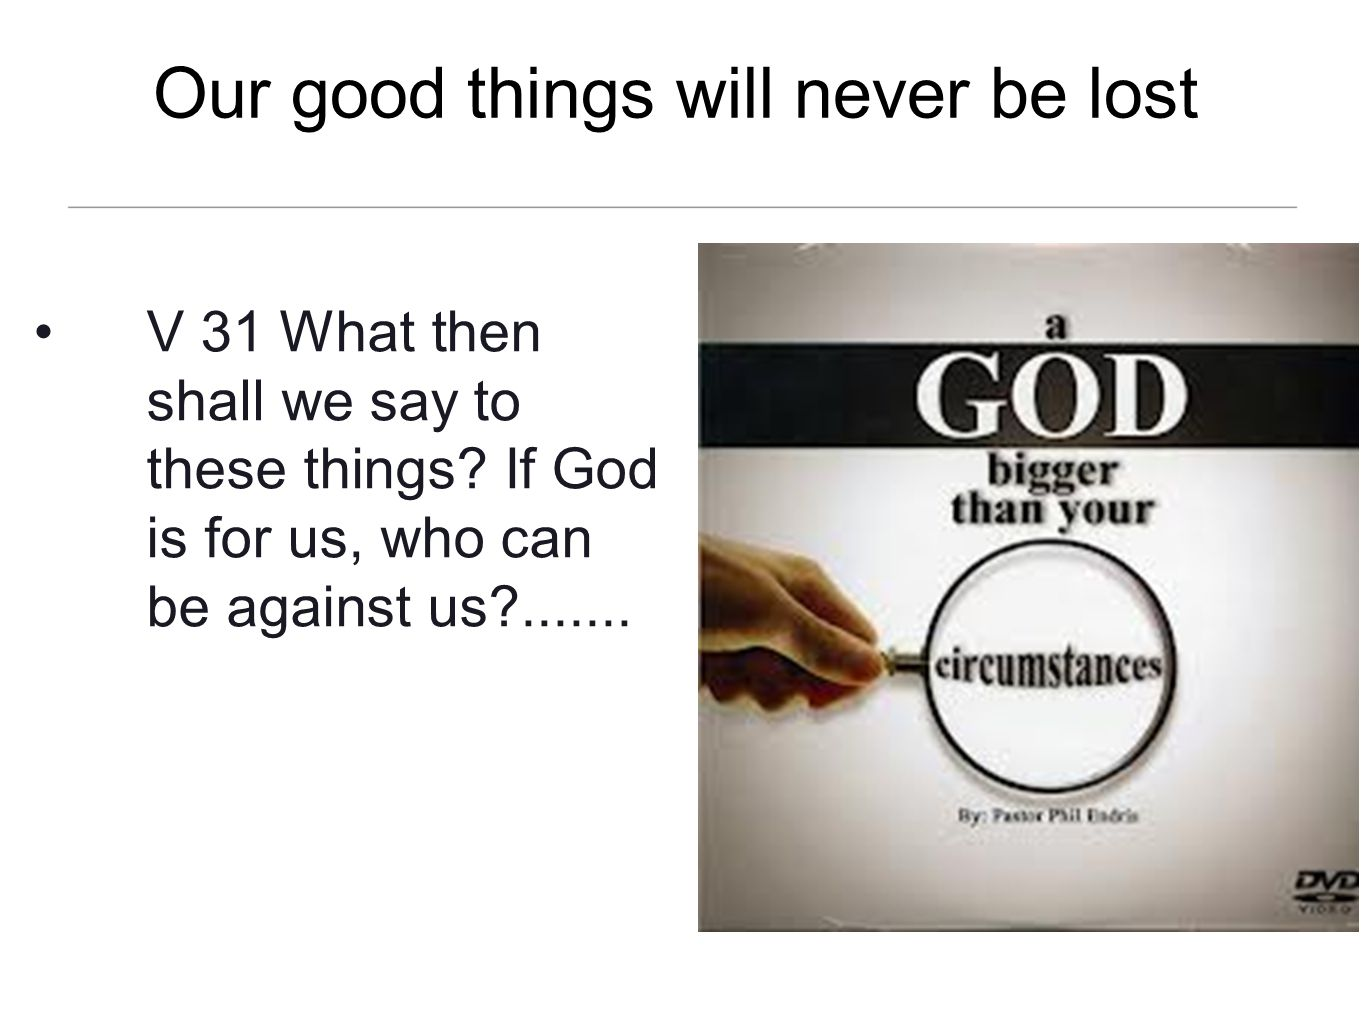 Our good things will never be lost